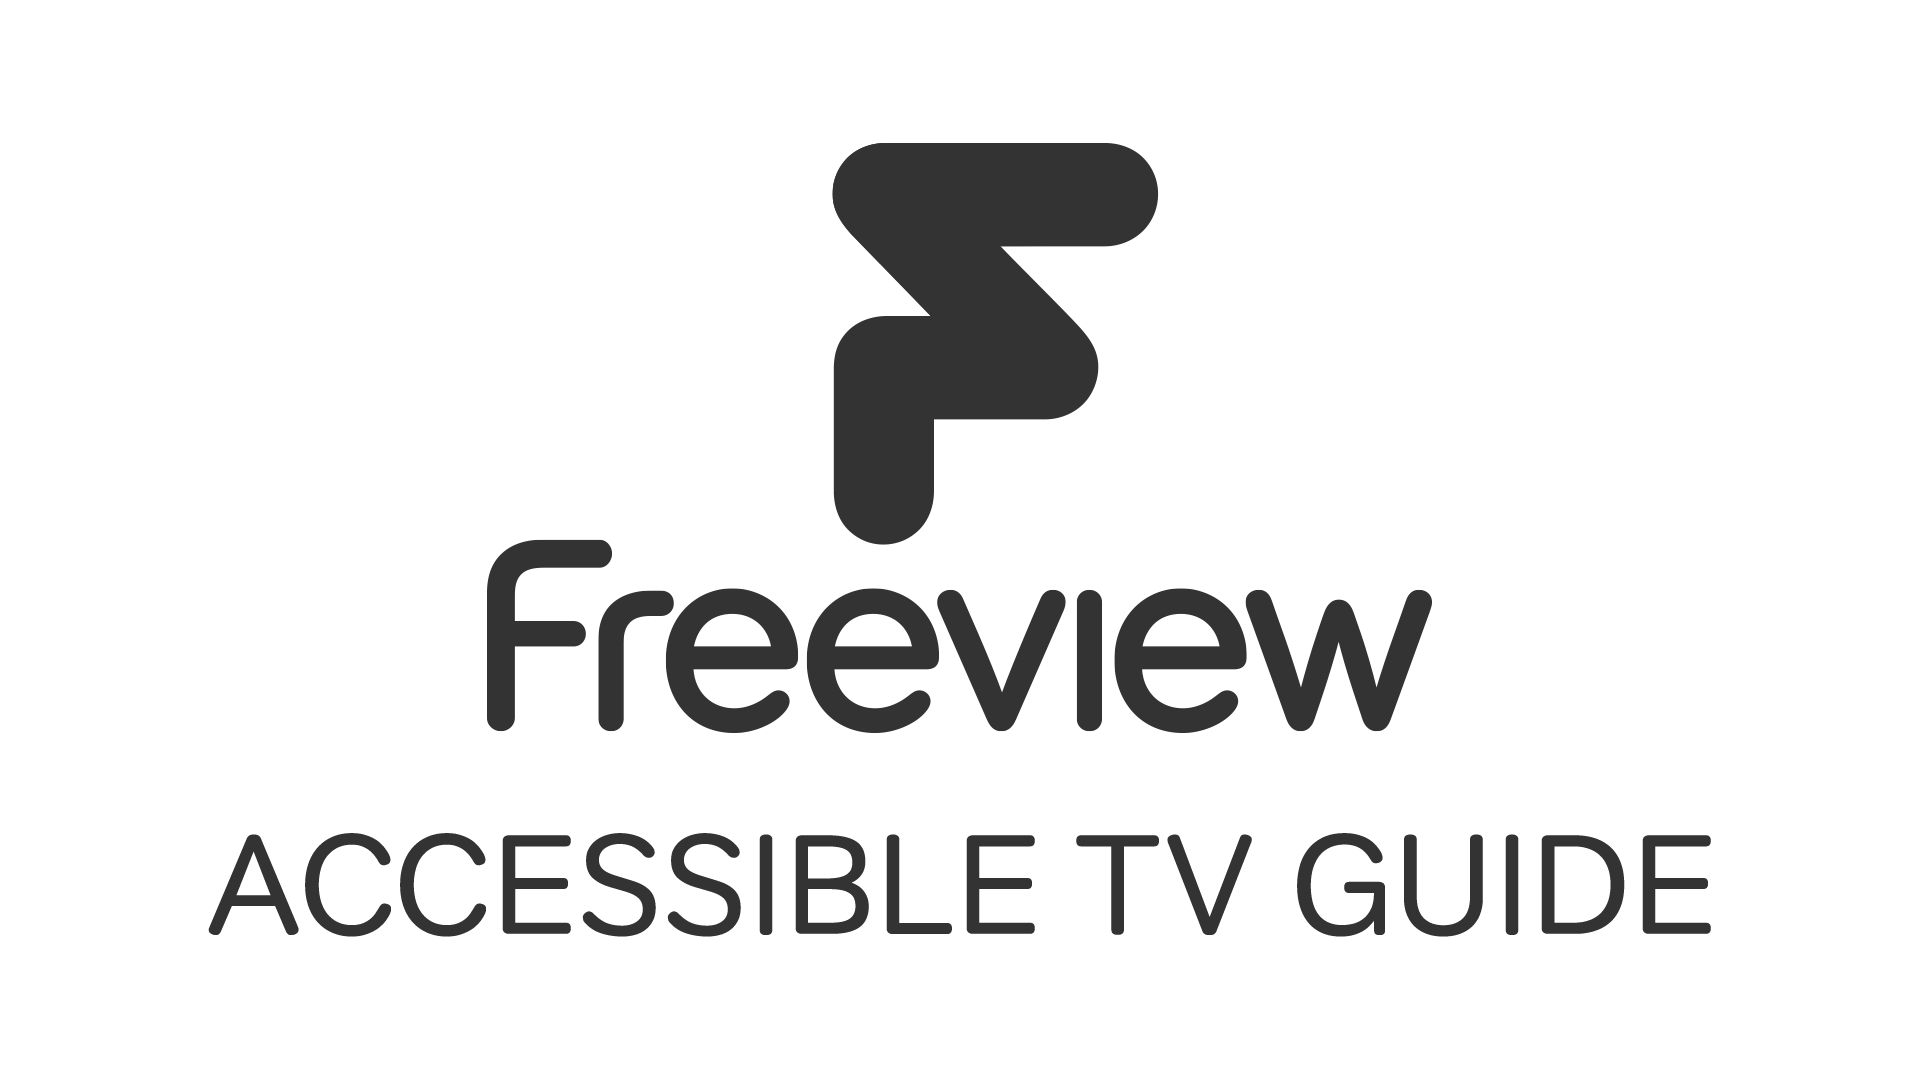 Freeview Accessible TV Guide logo